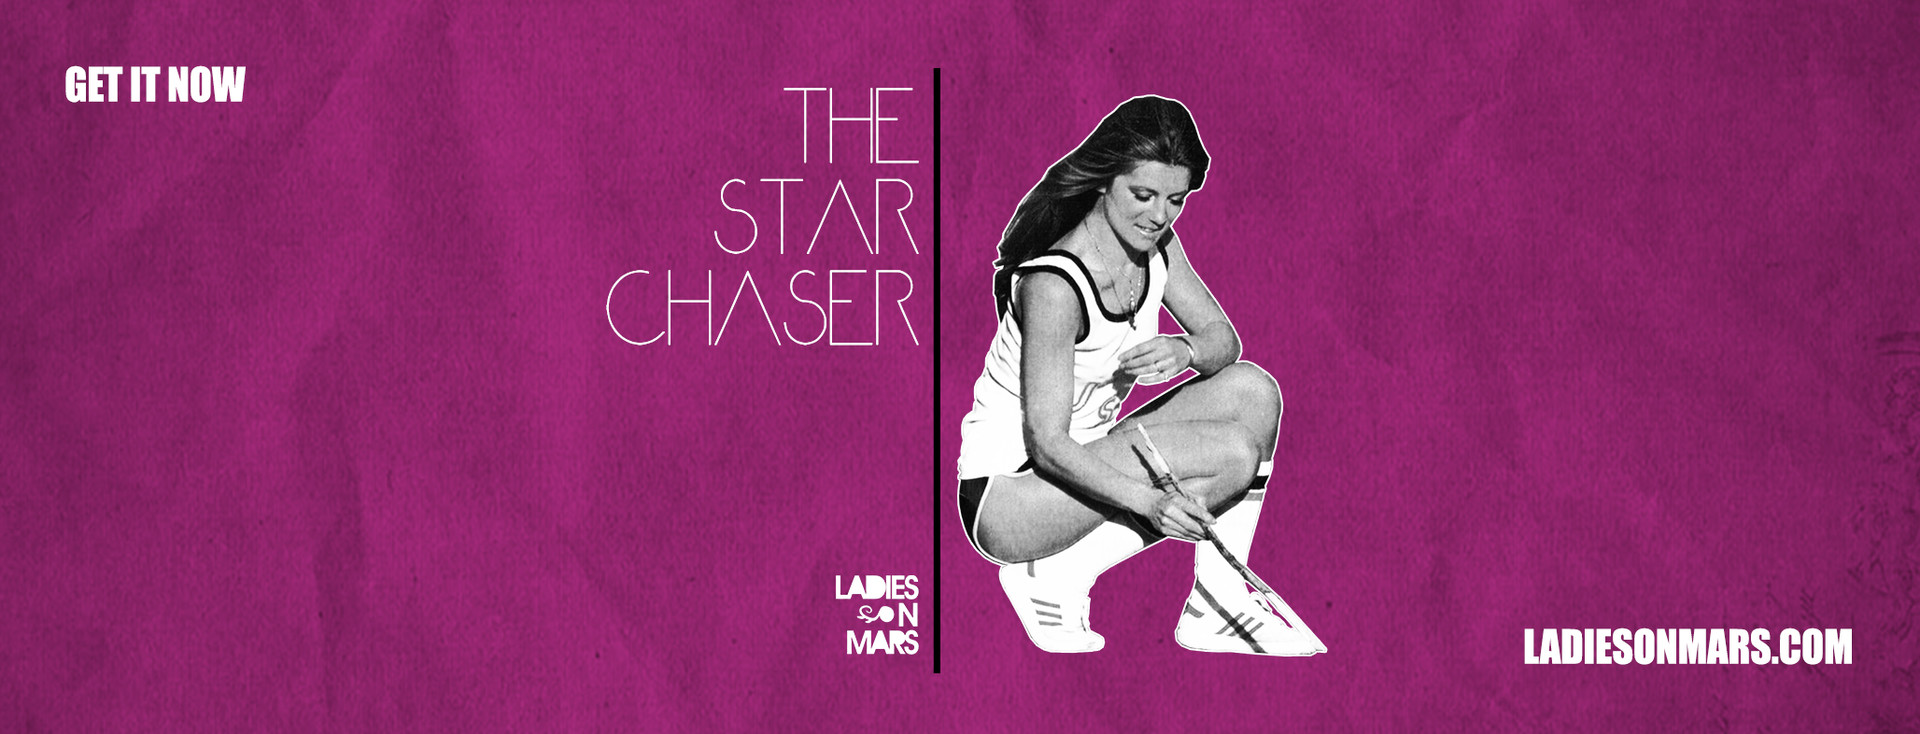 THE STAR CHASER